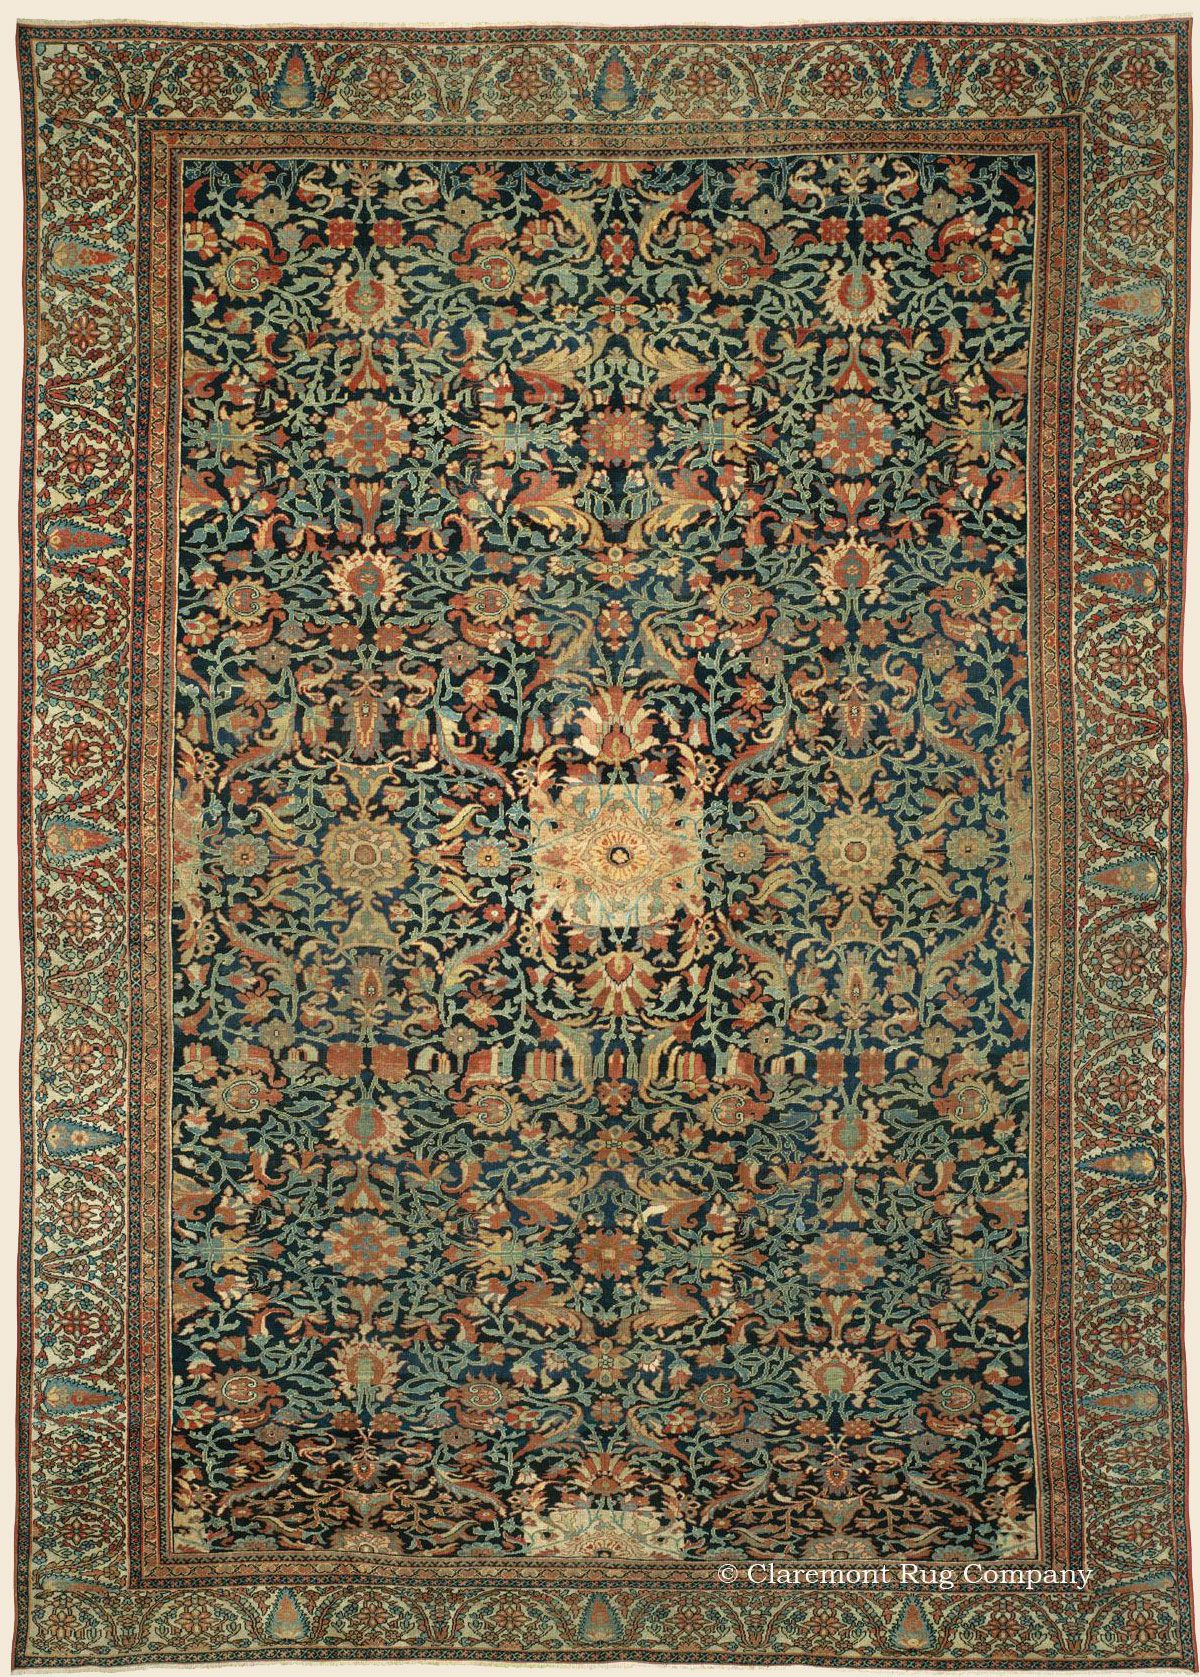 Ziegler Sultanabad 12 8 X 17 0 Circa 1875 West Central Persian Antique Rug Claremont Rug Company Click To Rugs Rugs On Carpet Claremont Rug Company